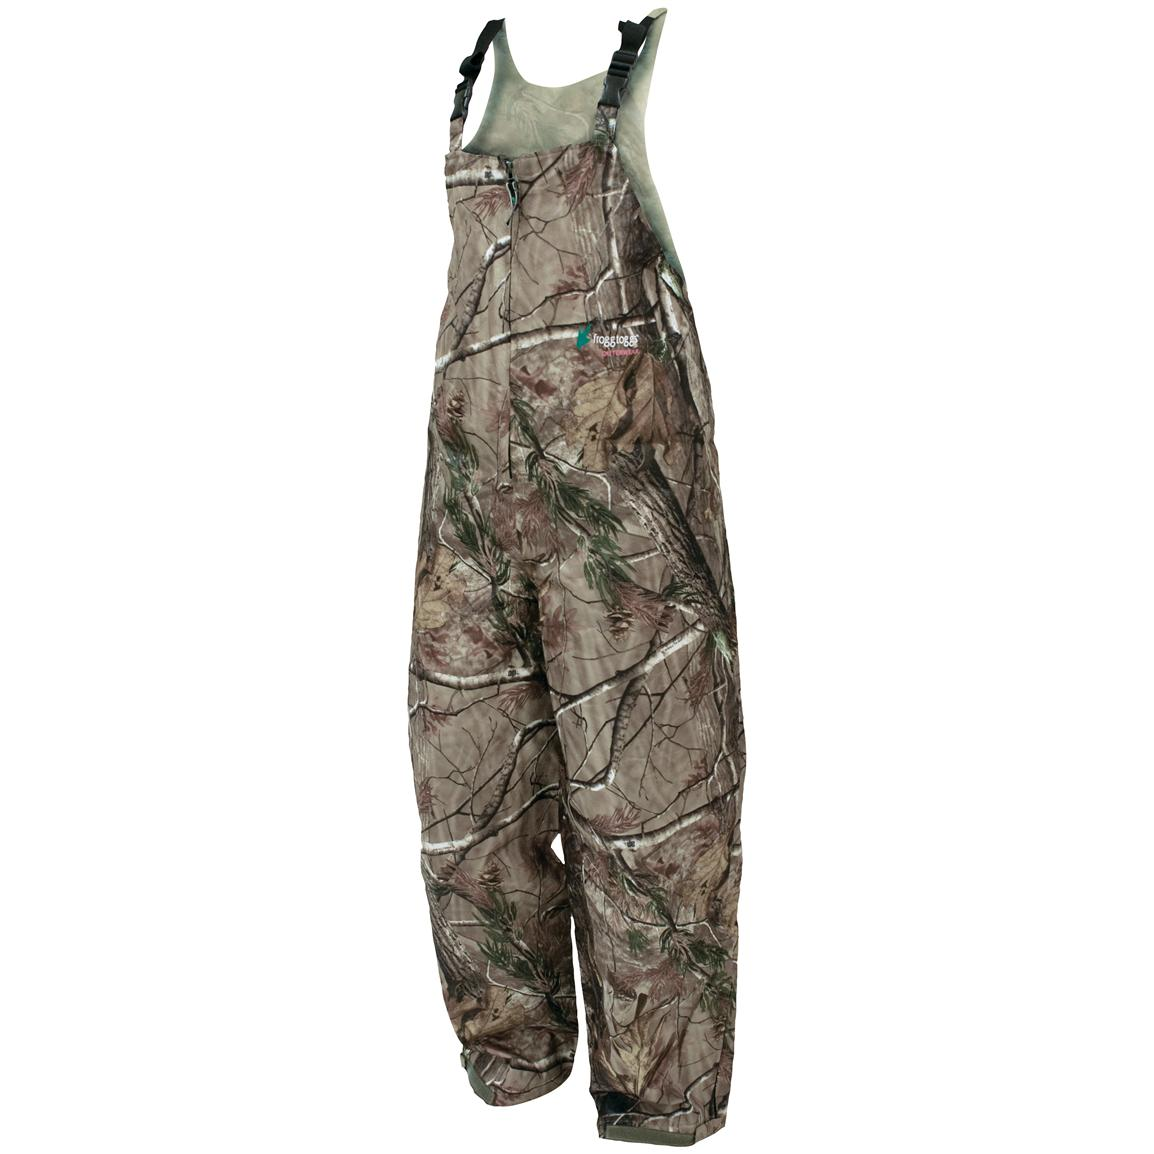 frogg toggs® ToadSkinz™ Waterproof / Breathable Camo Bib Overalls, Realtree® AP